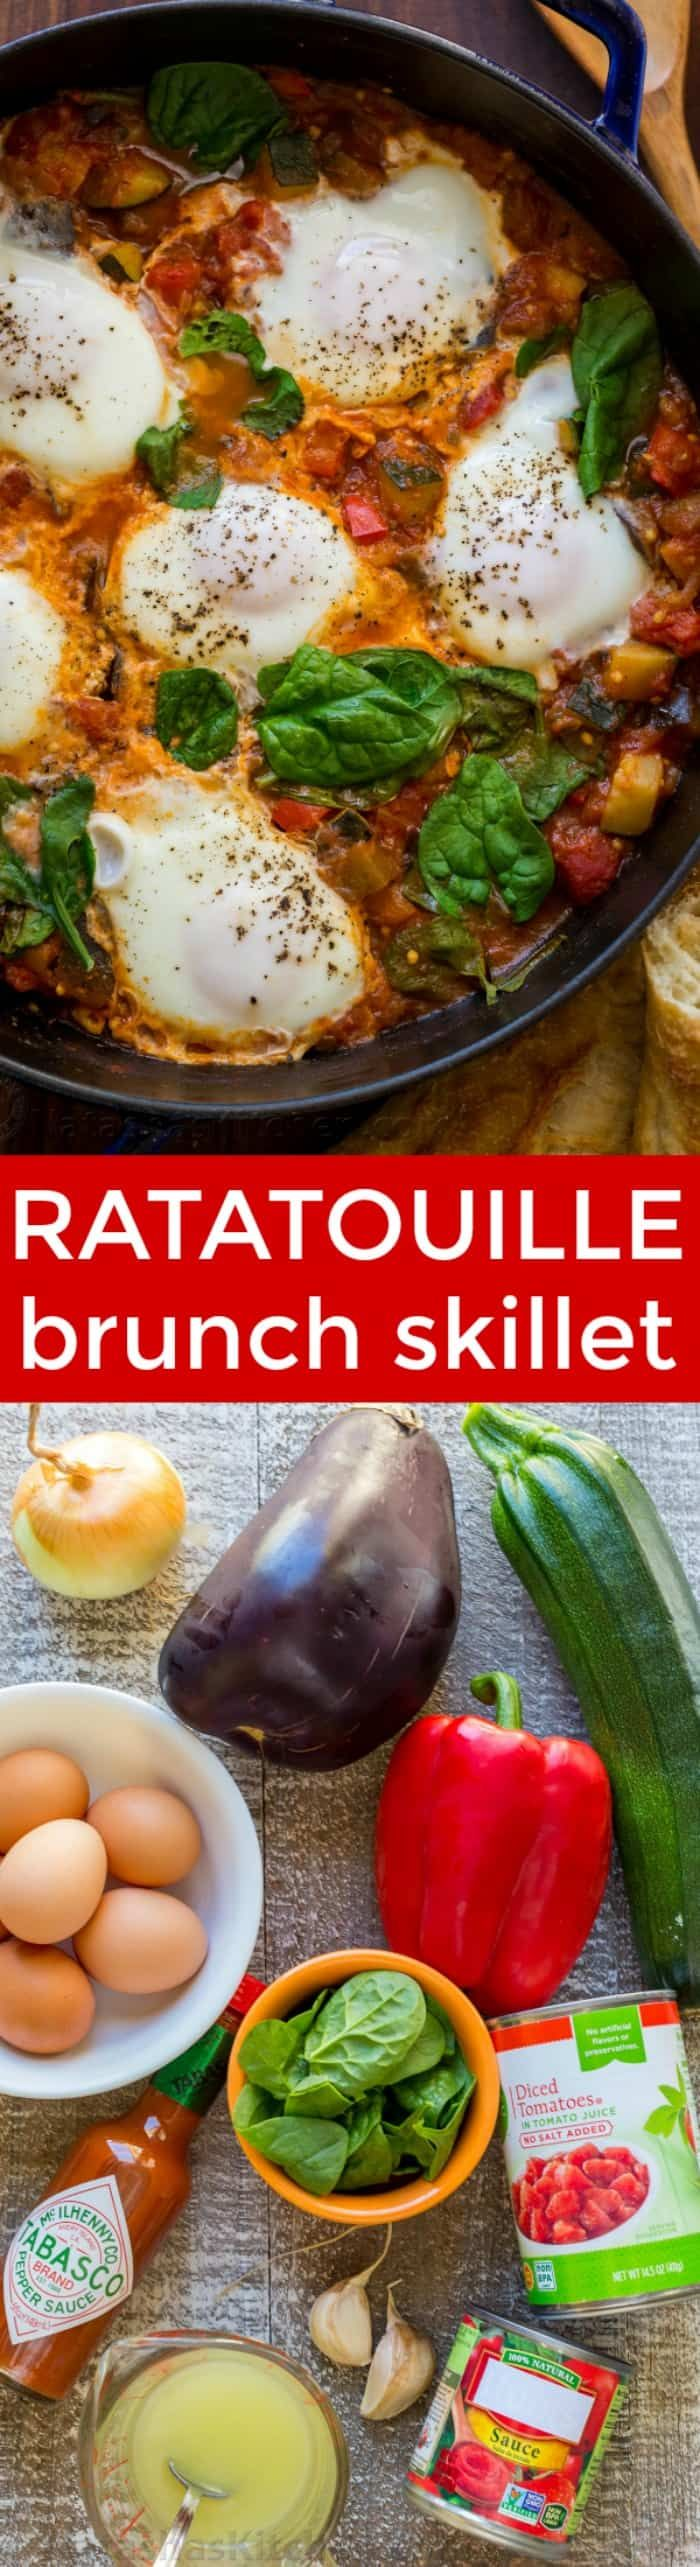 This Ratatouille Brunch Skillet is loaded with zucchini, hearty eggplant and bell peppers in a spicy tomato based sauce, crowned with egg and fresh spinach. Sponsored by @Tabasco | natashaskitchen.com